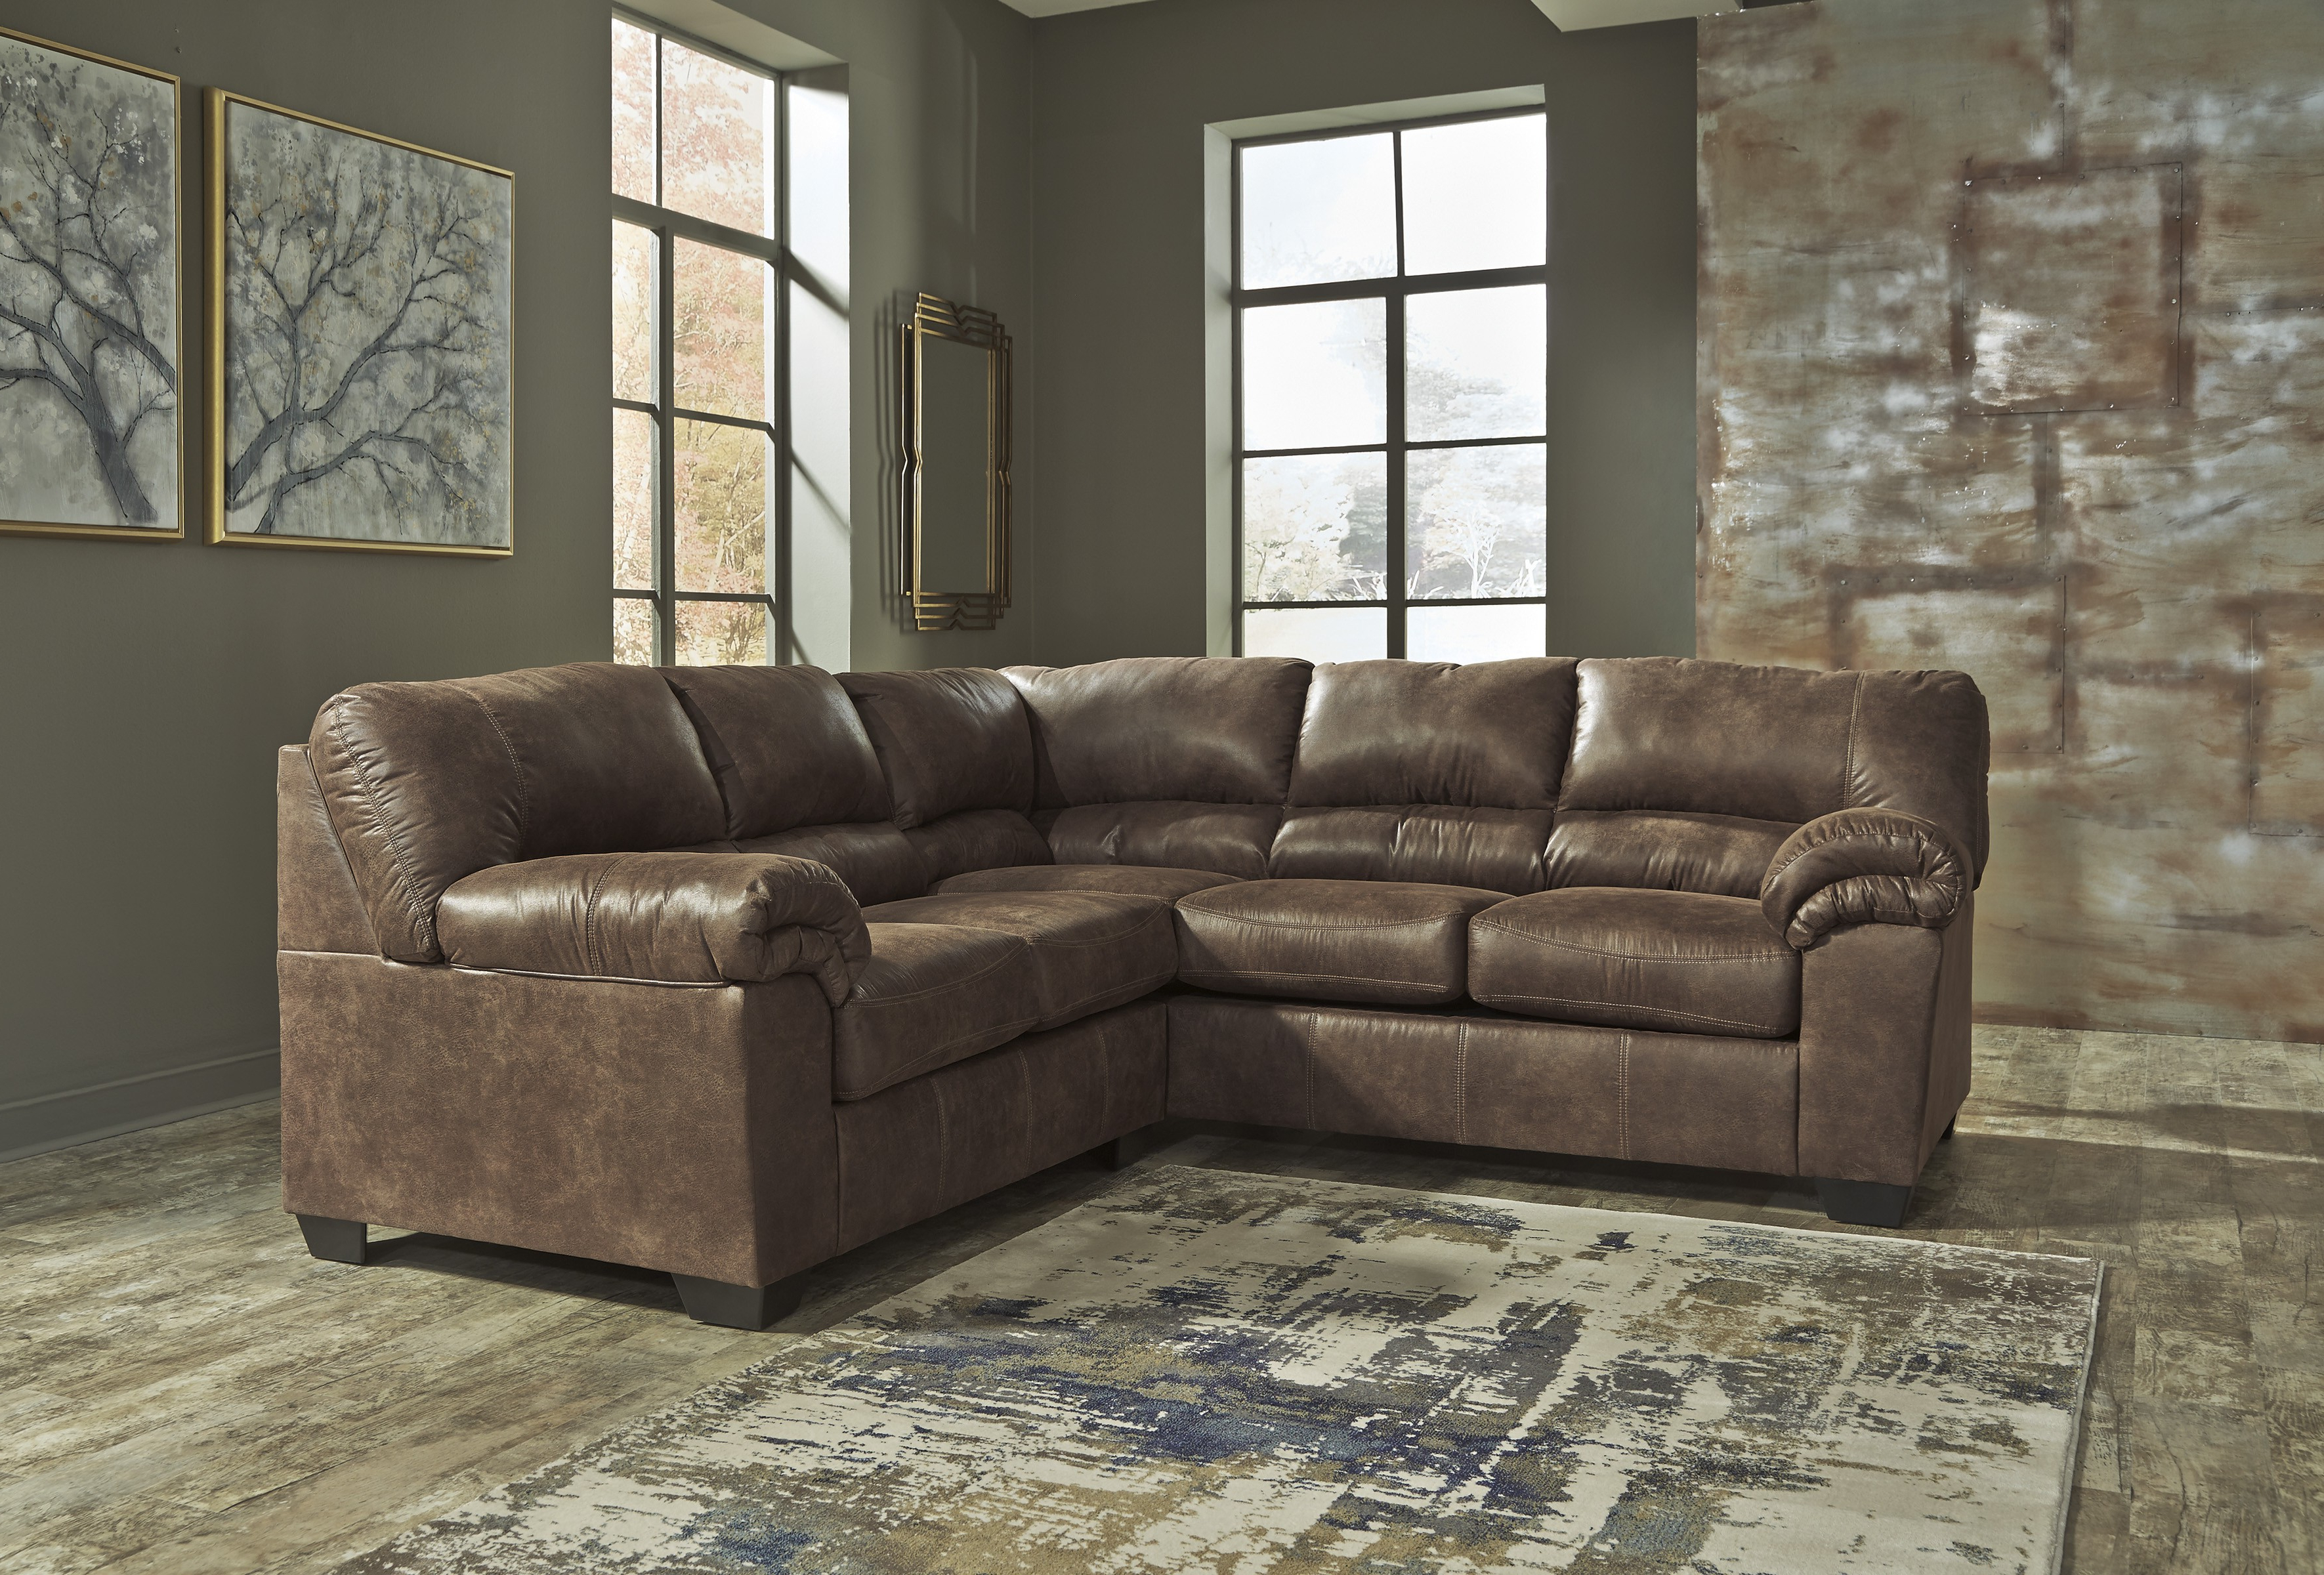 Baci Living Room Pertaining To Turdur 3 Piece Sectionals With Raf Loveseat (View 2 of 20)